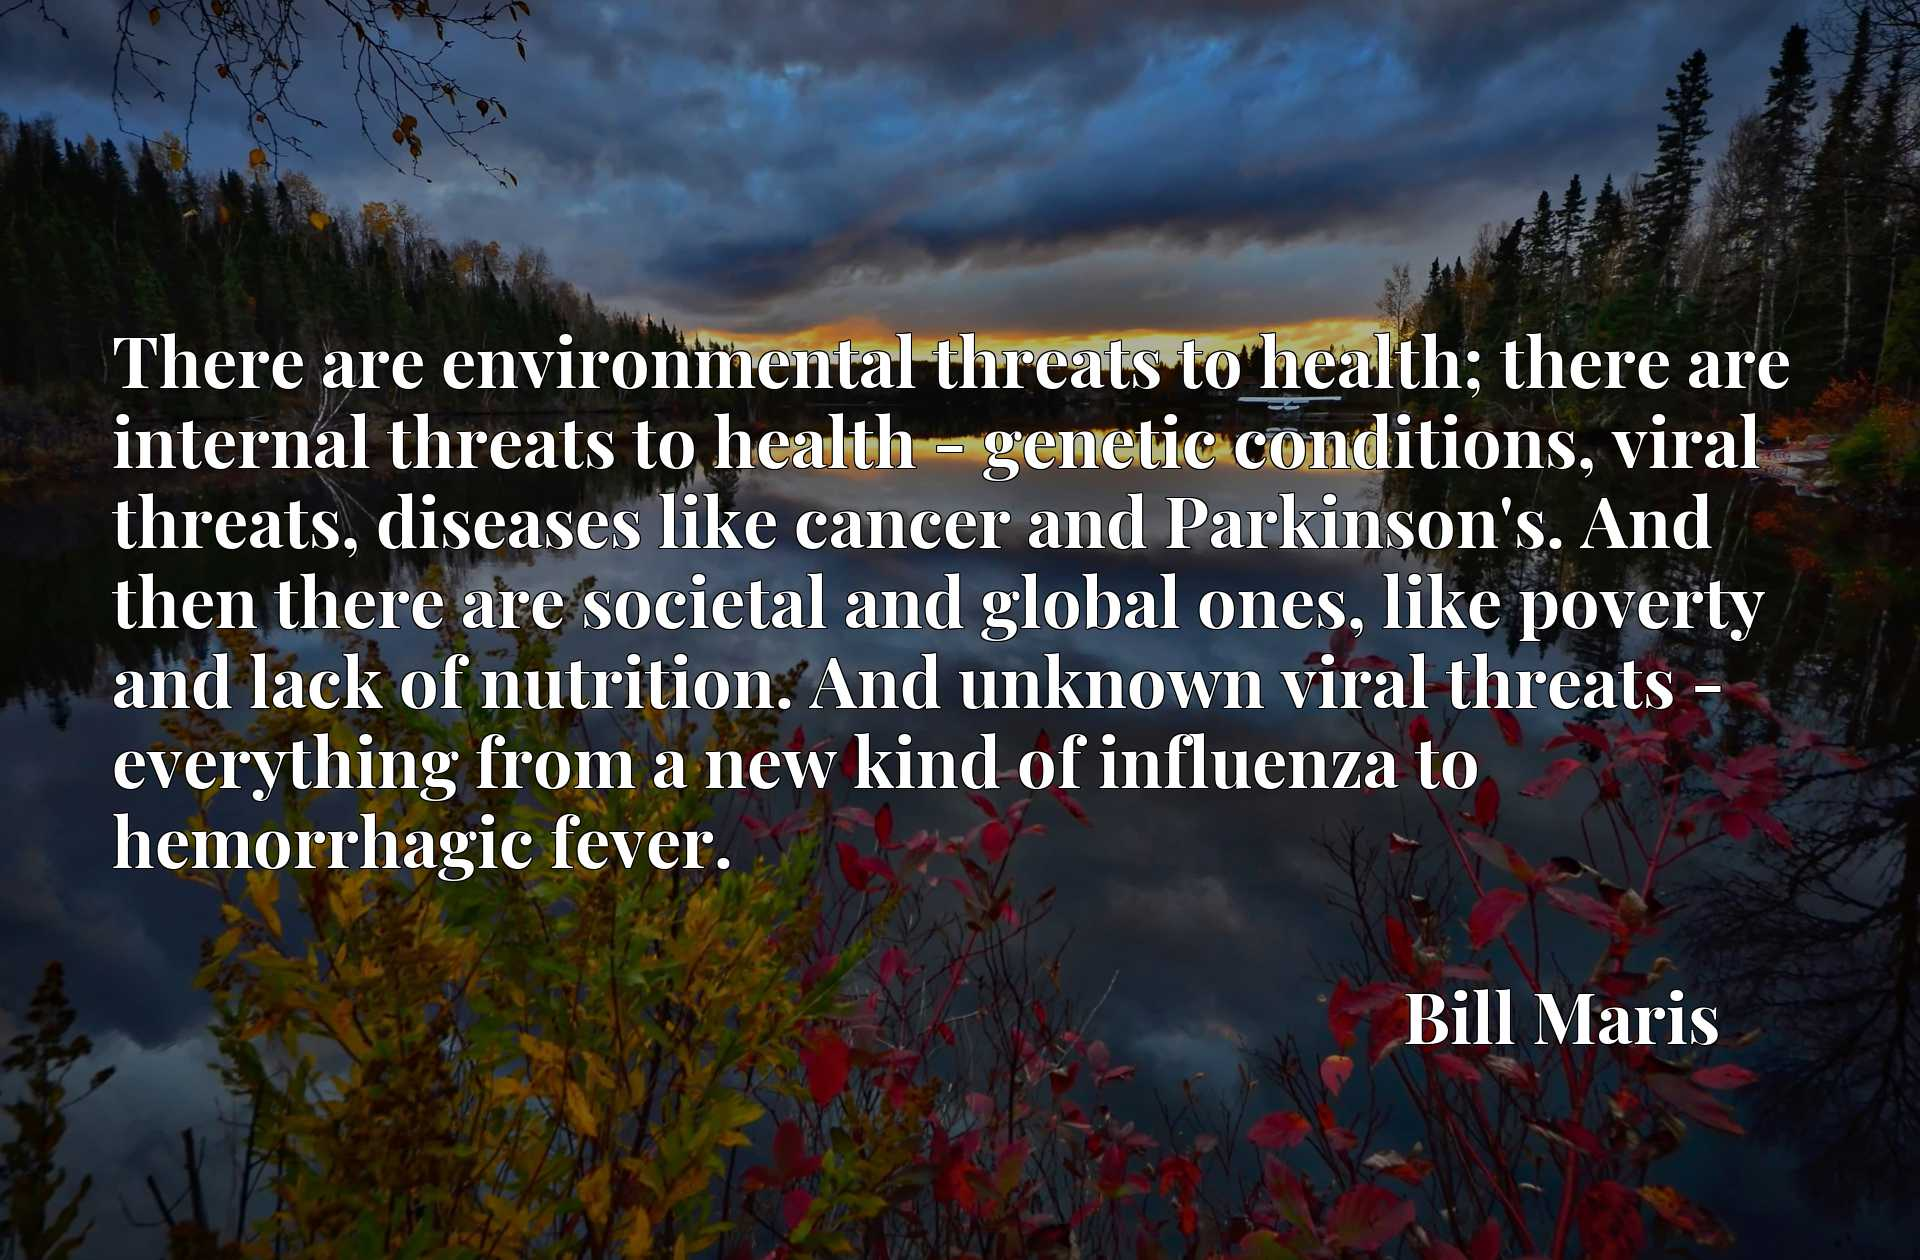 There are environmental threats to health; there are internal threats to health - genetic conditions, viral threats, diseases like cancer and Parkinson's. And then there are societal and global ones, like poverty and lack of nutrition. And unknown viral threats - everything from a new kind of influenza to hemorrhagic fever.